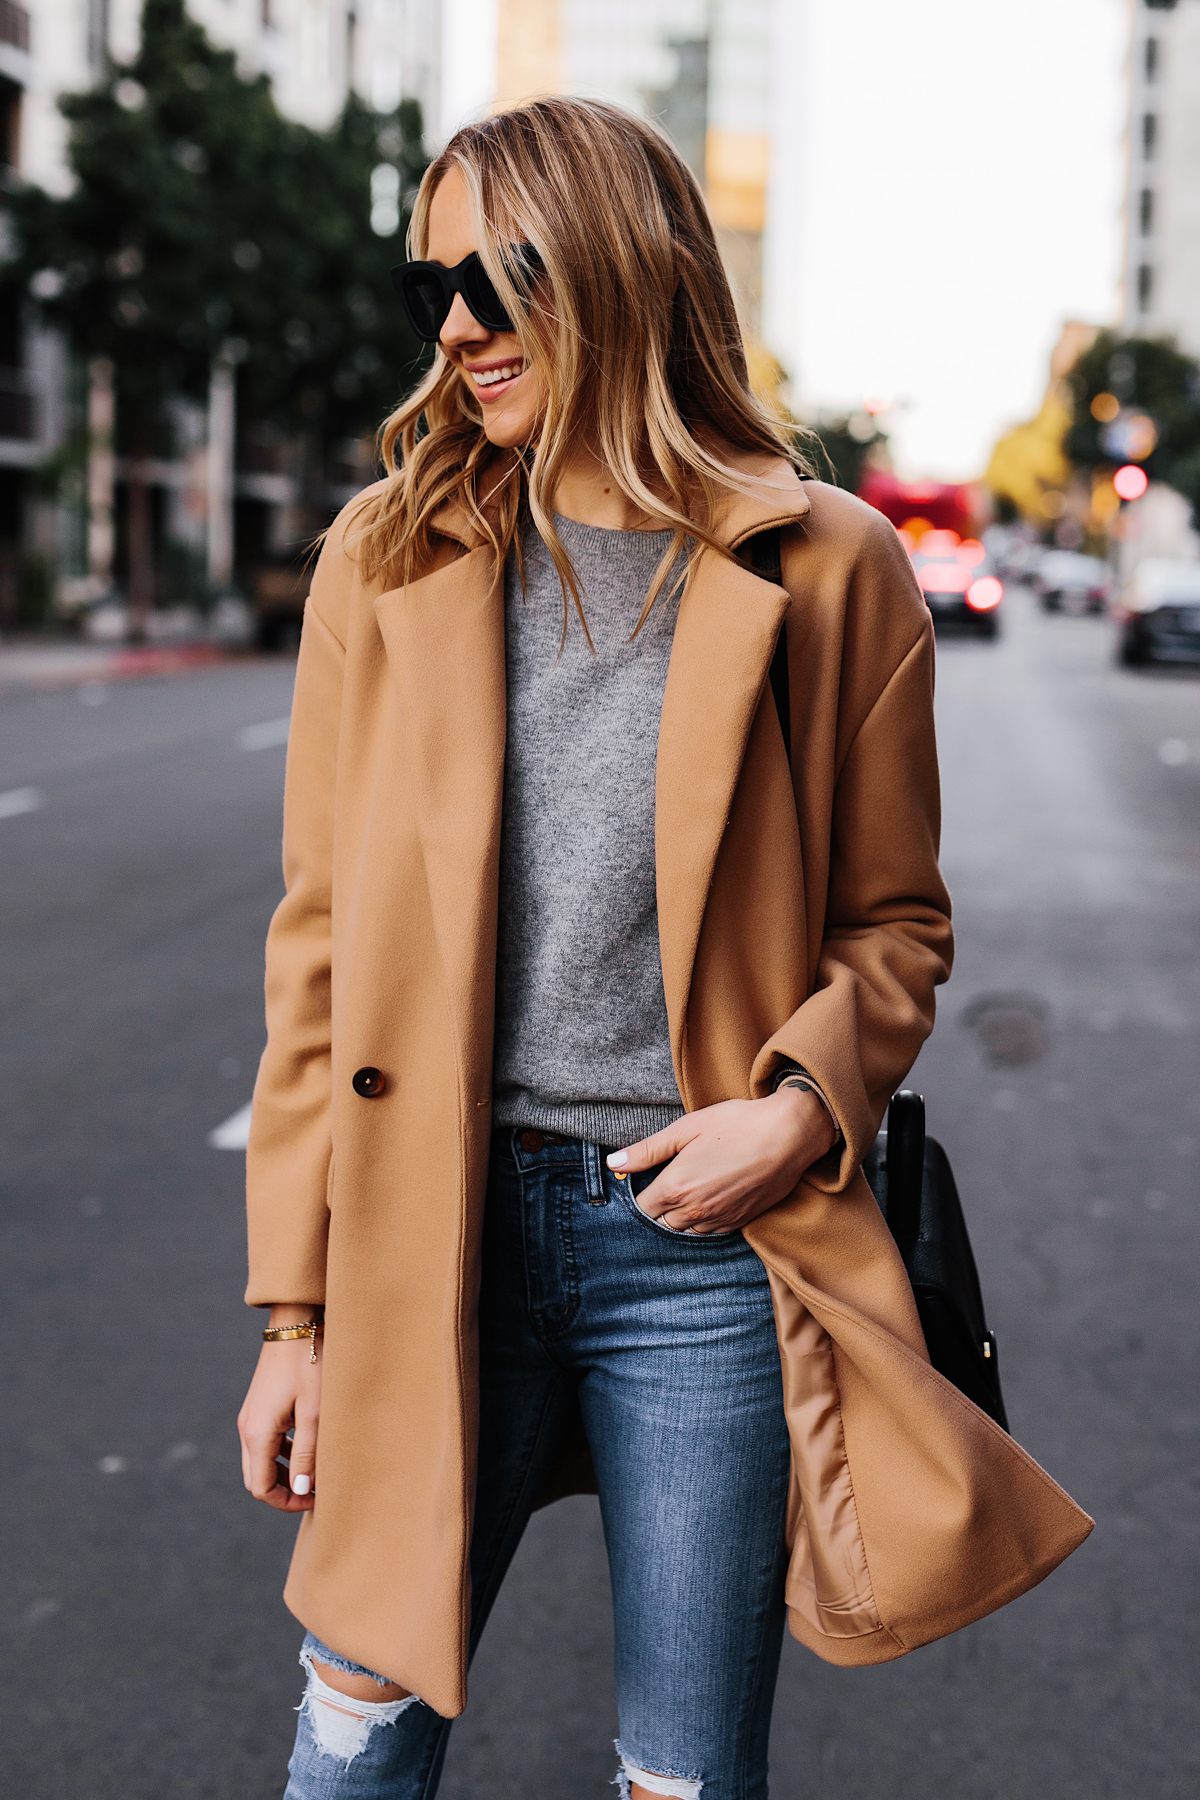 Blonde Woman Wearing Camel Coat Grey Sweater Denim Ripped Skinny Jeans Outfit Fashion Jackson San Diego Fashion Blogger Street Style